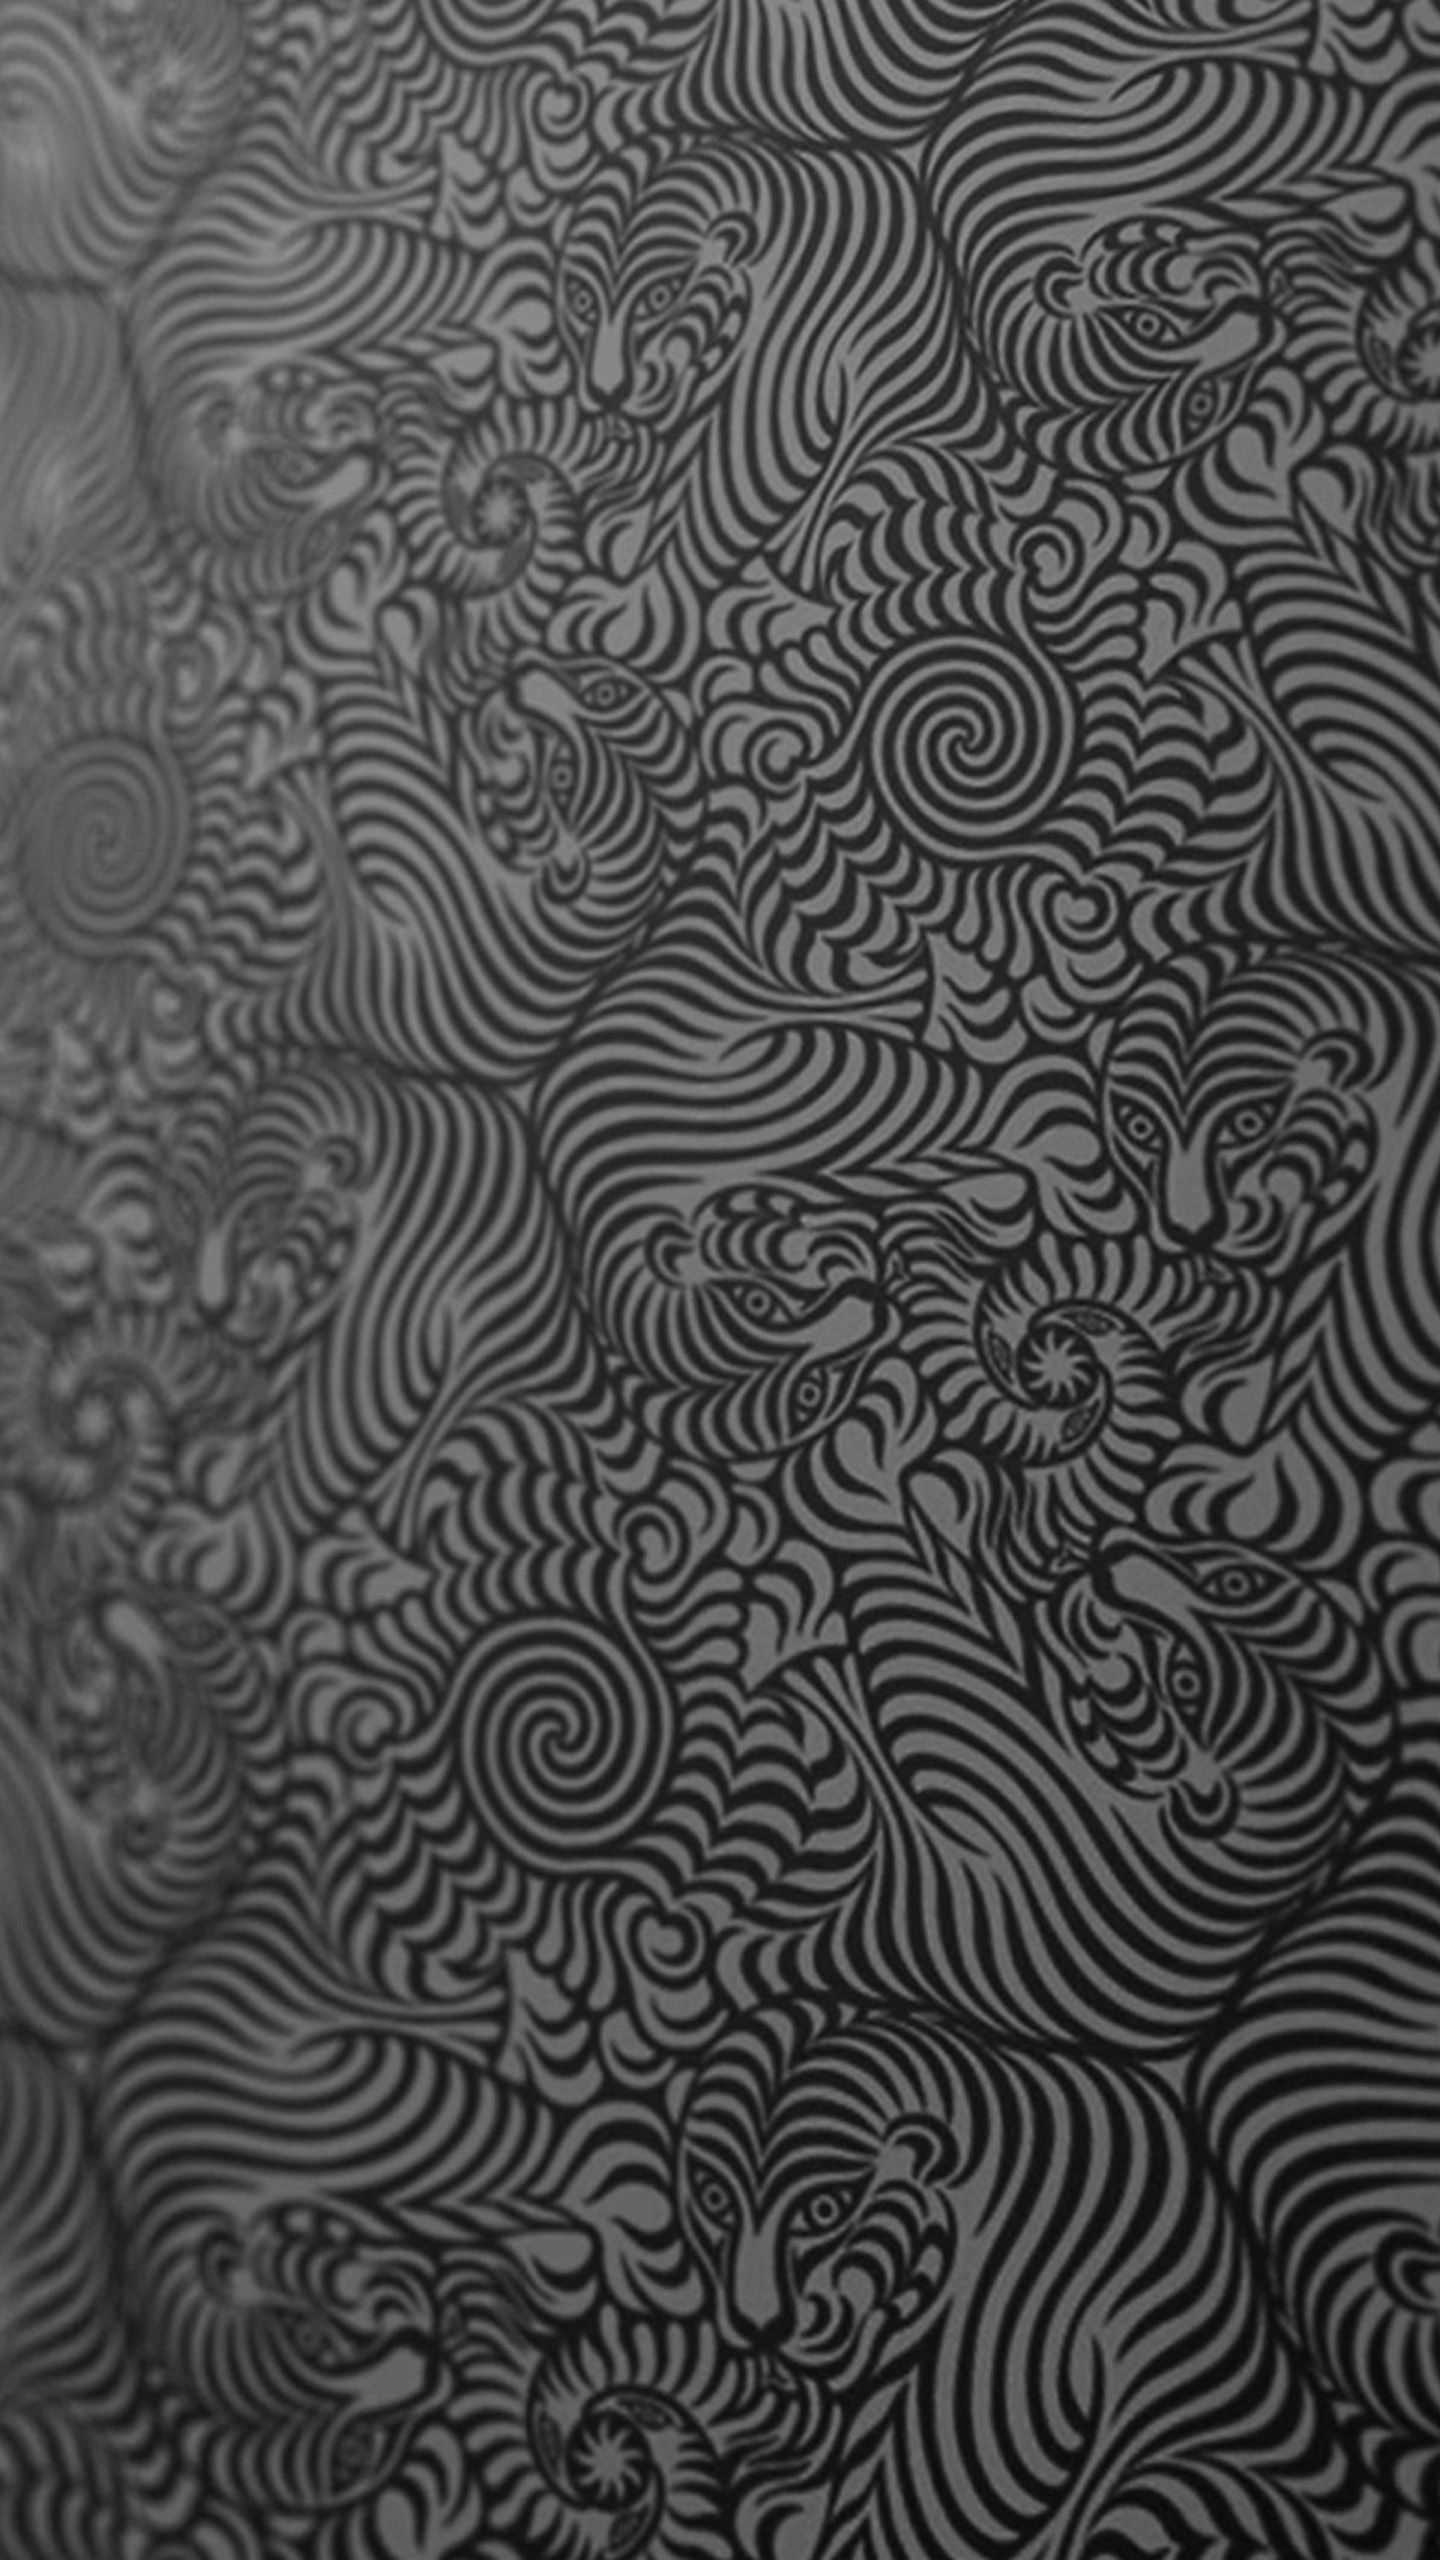 Textures Samsung Galaxy Note 4 Wallpapers 84 Black Hd Wallpaper Phone Wallpaper Patterns Iphone Wallpaper